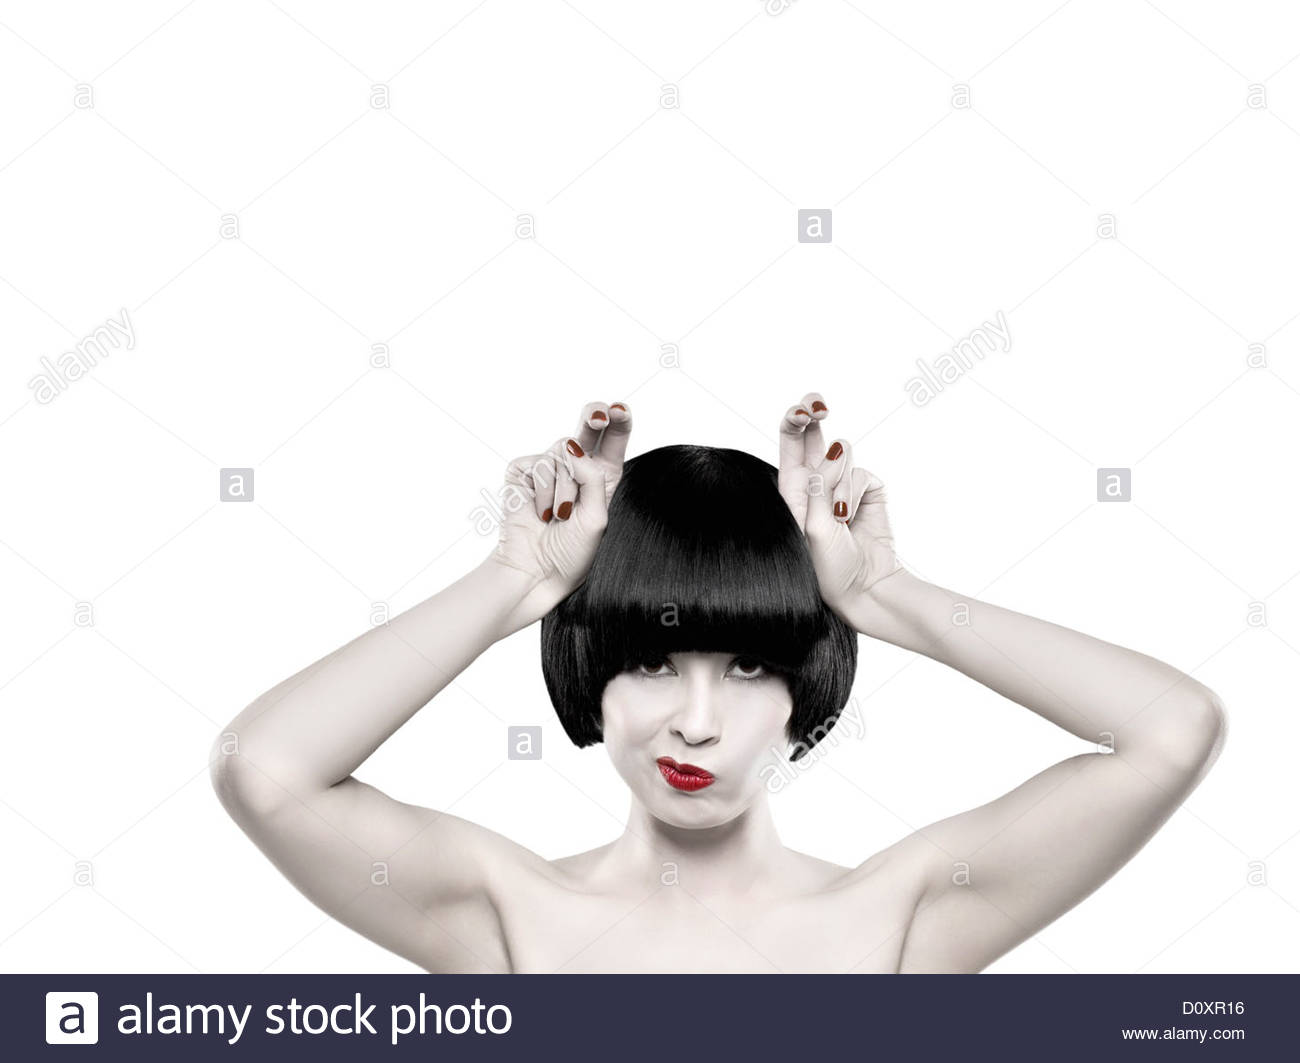 Young woman with black bob making bunny ears - Stock Image